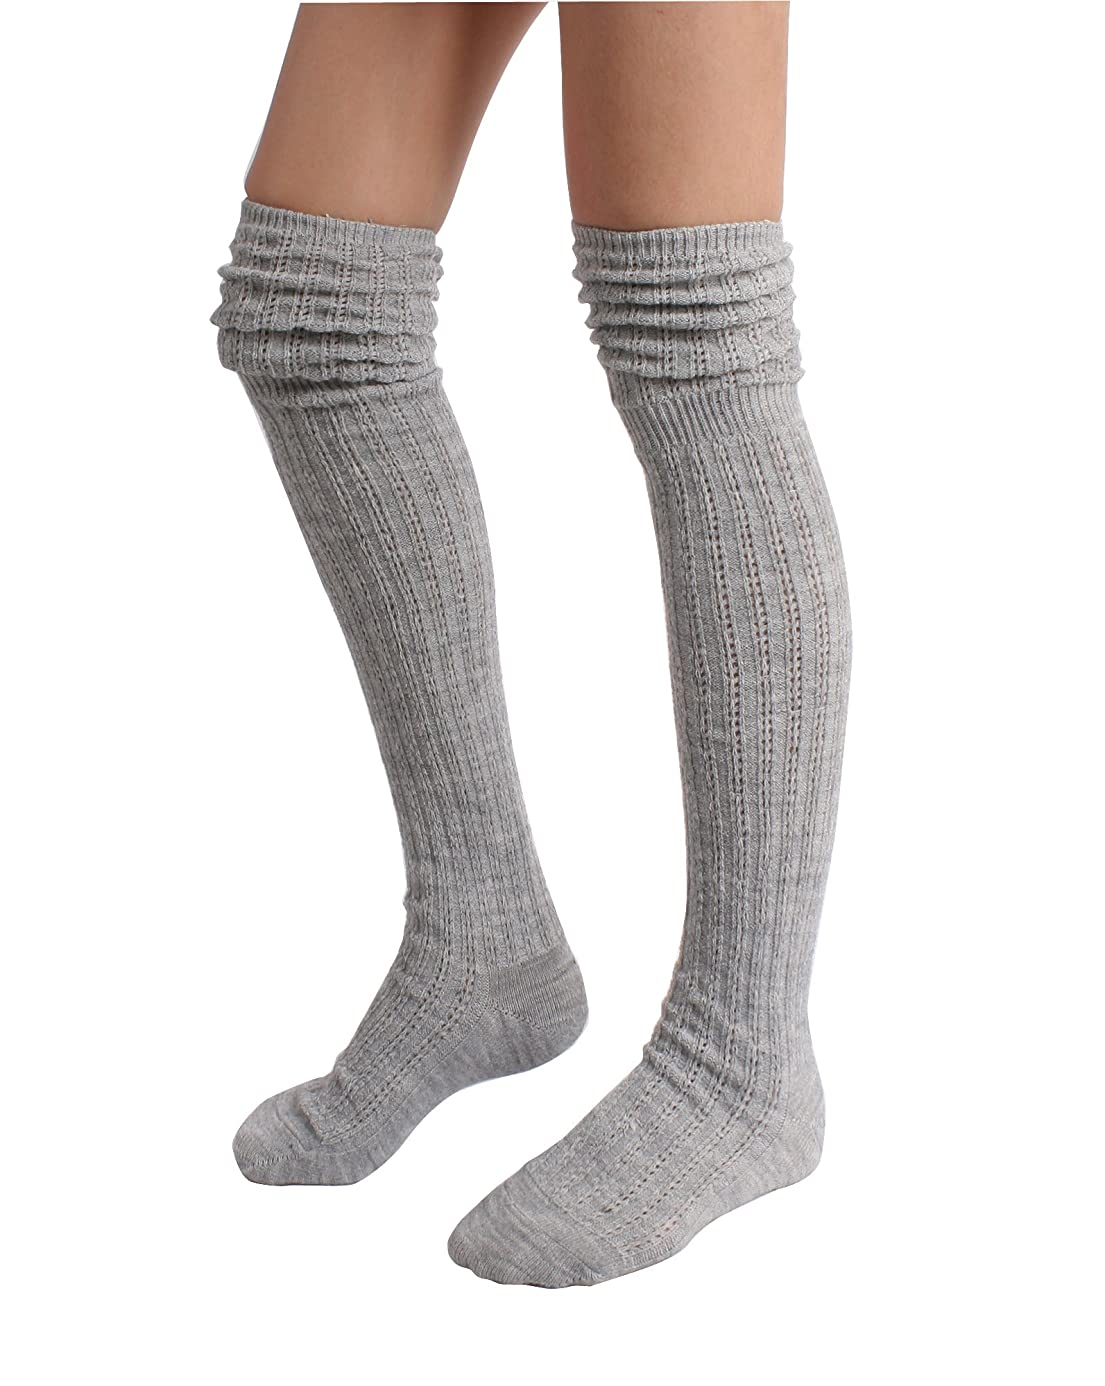 STYLEGAGA Winter Slouch Top Over The Knee High Knit Boot Socks hrc6812091